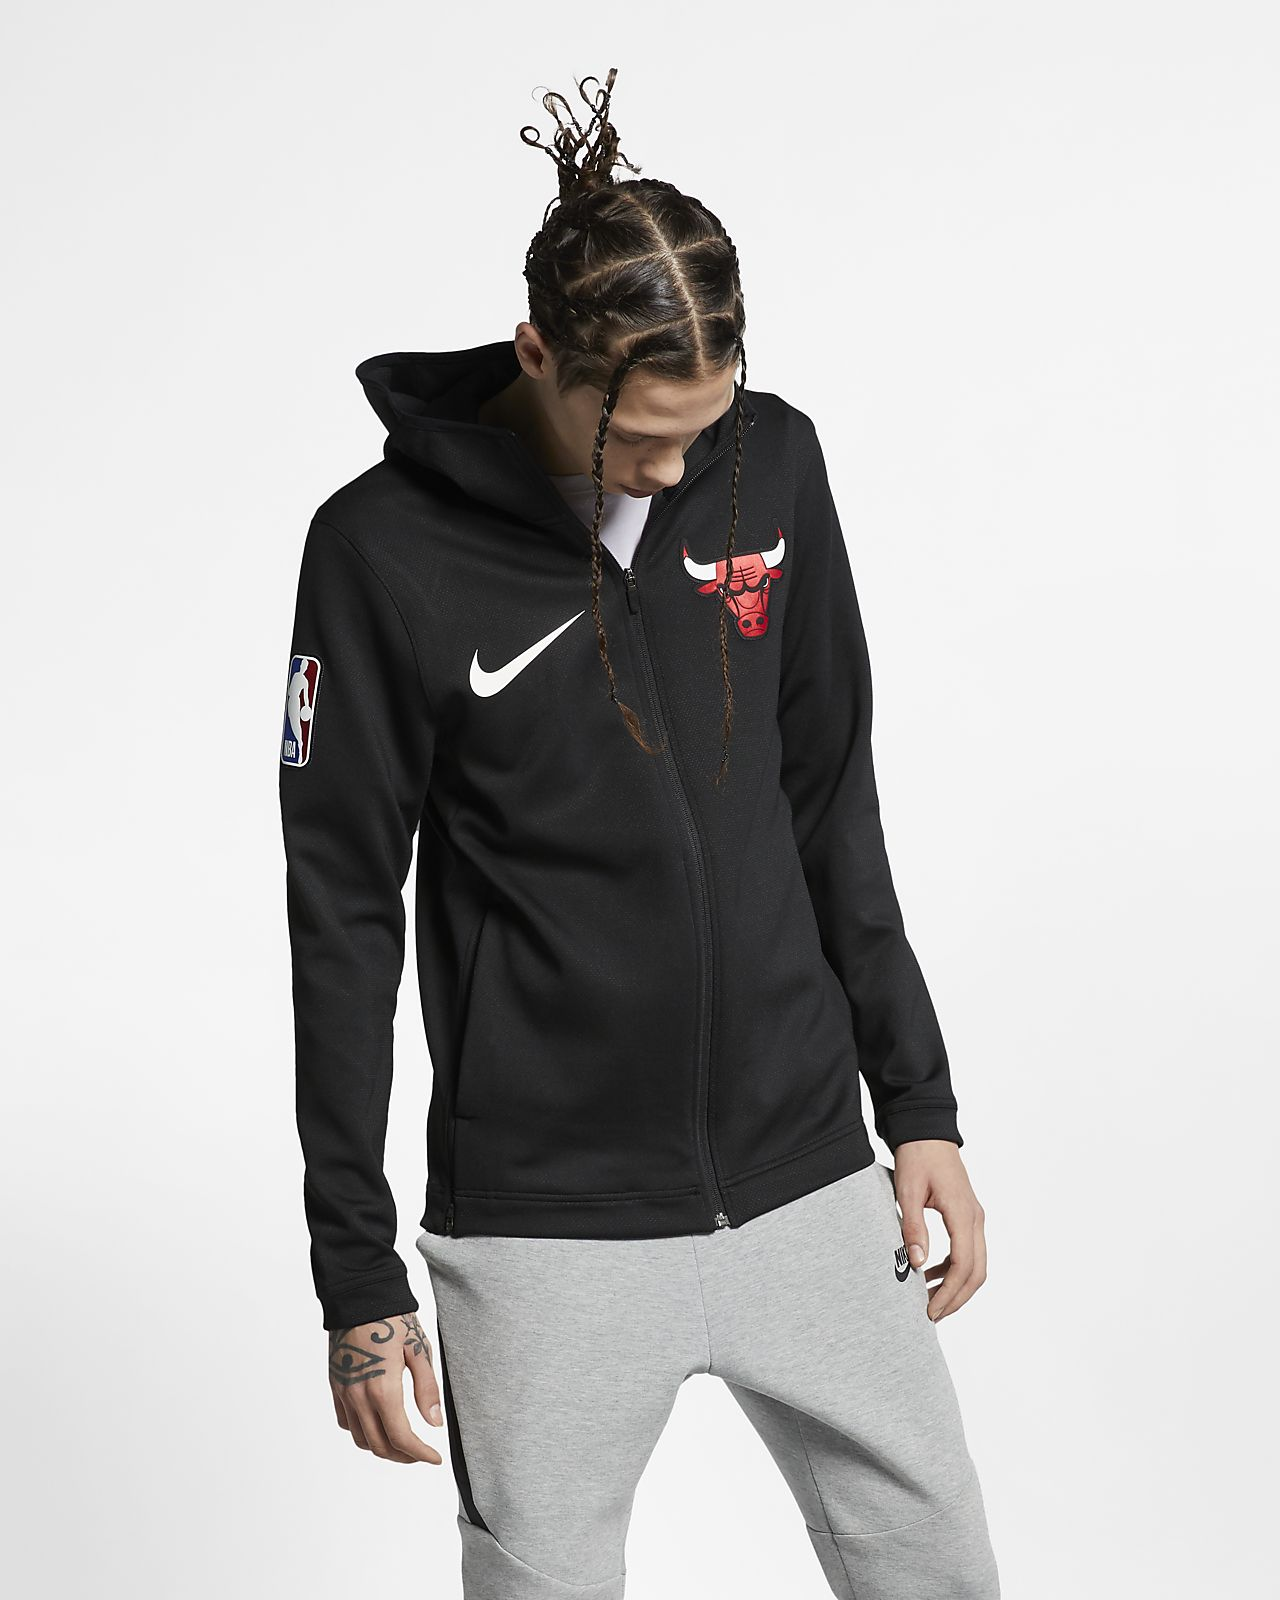 dc3964e1ab26 Chicago Bulls Nike Therma Flex Showtime Men s NBA Hoodie. Nike.com GB